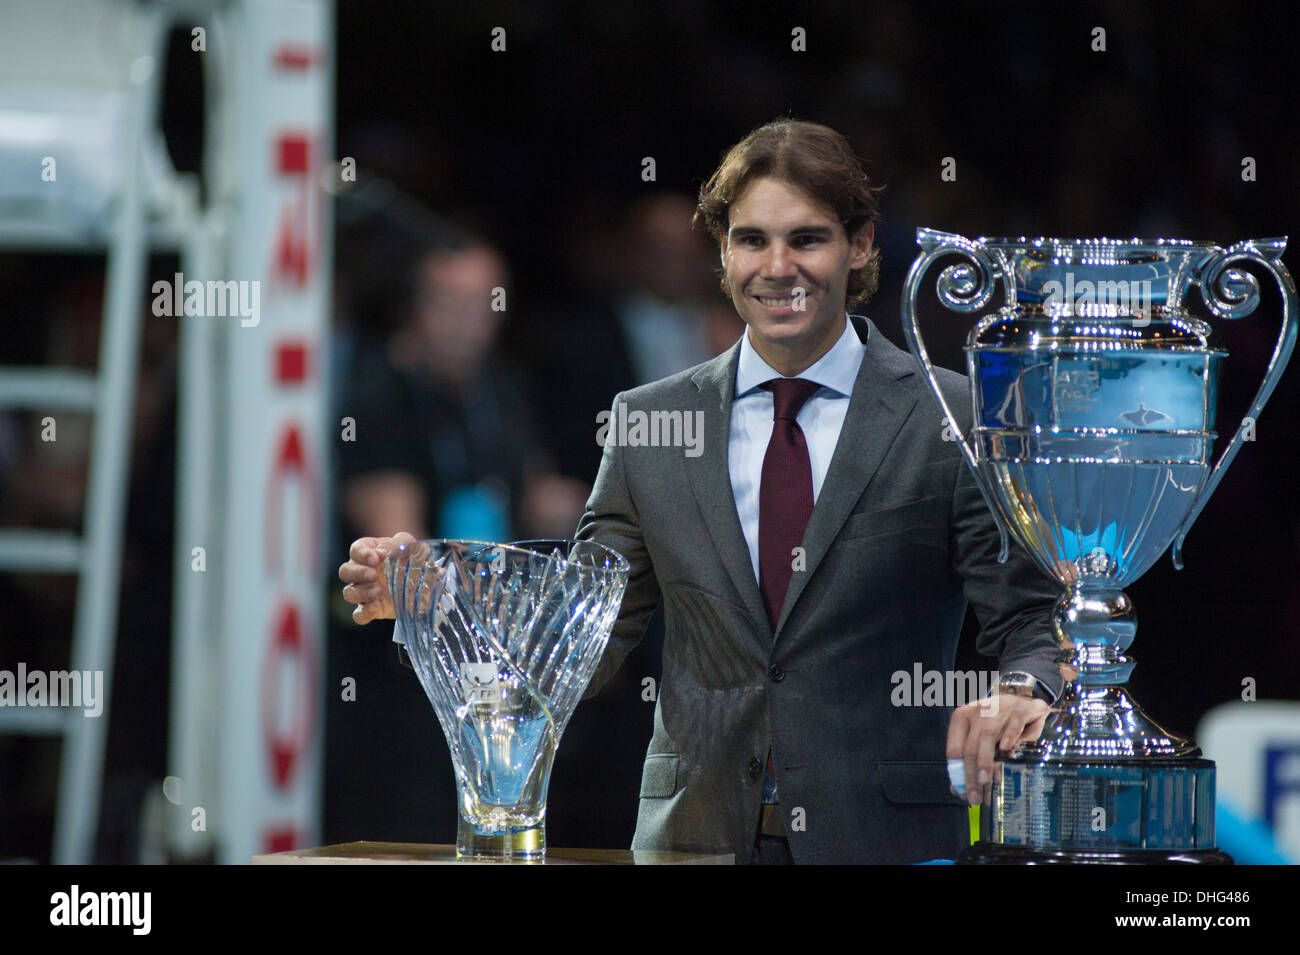 London, UK. 9 November 2013.  Rafael Nadal is presented with two awards: ATP World Tour No 1 presented by Emirates, and Comeback Player of the Year Credit:  Malcolm Park editorial/Alamy Live News - Stock Image